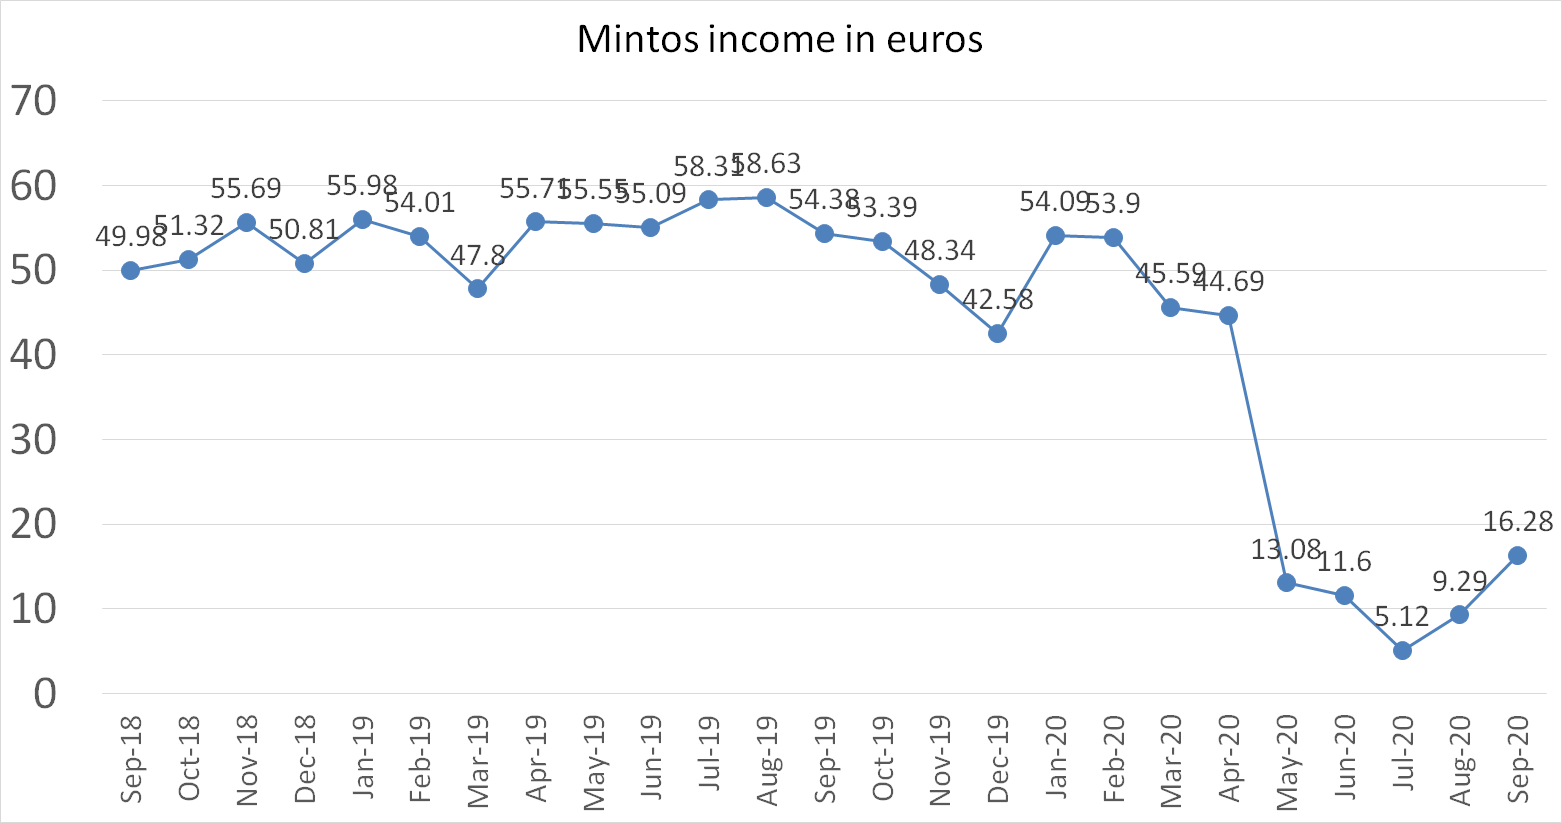 Mintos income in euros september 2020